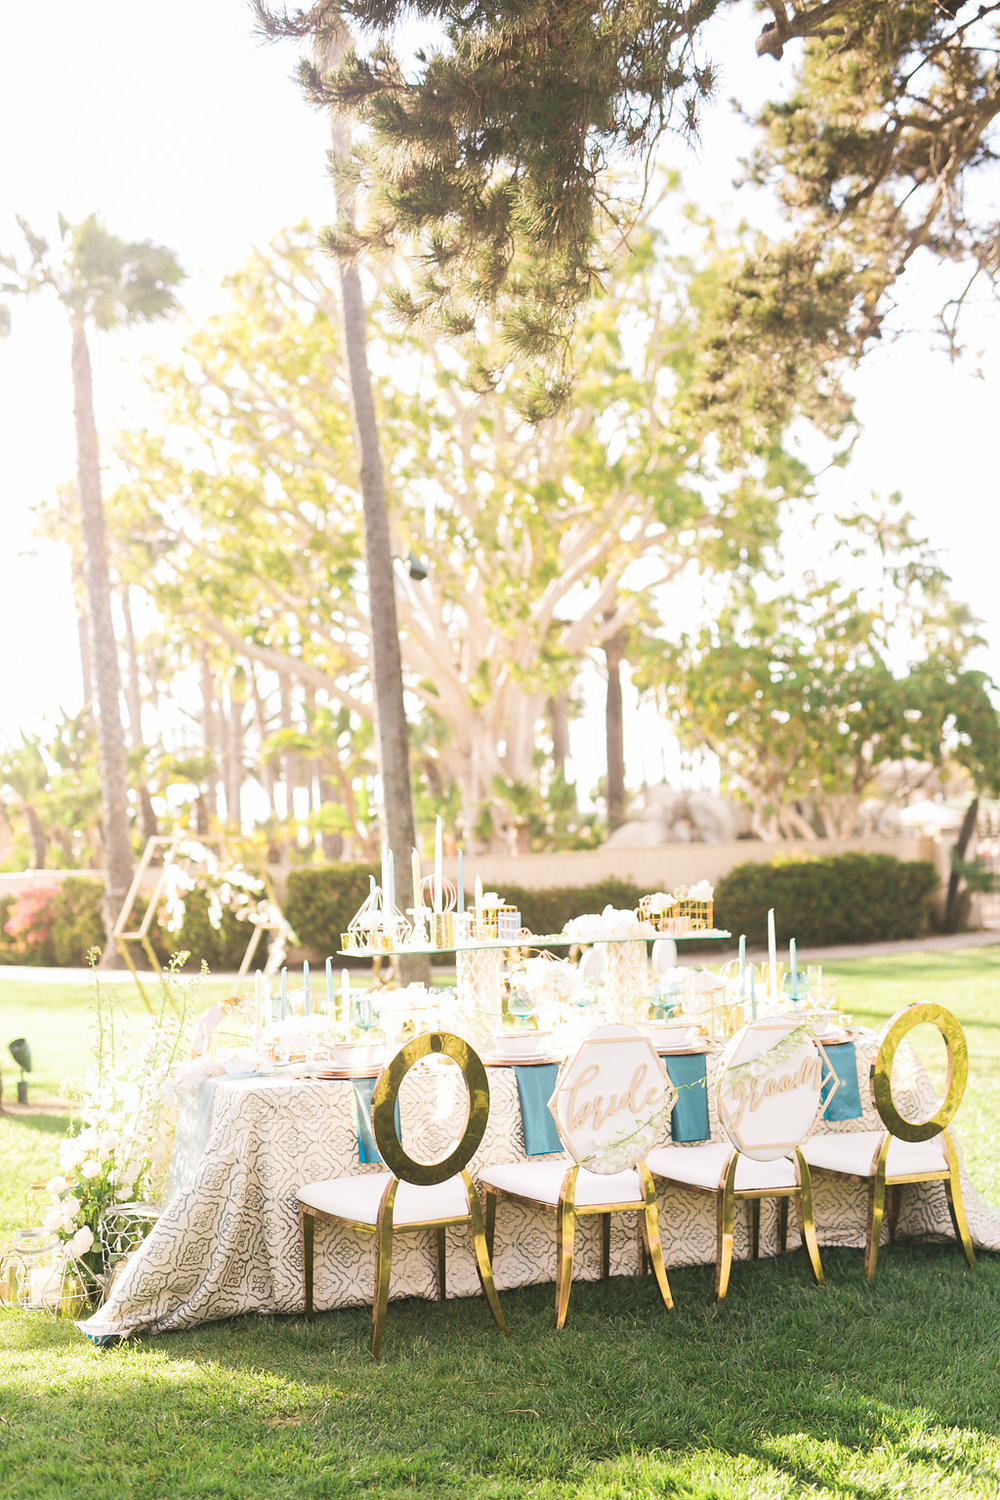 The reception table came together nicely with layers of pattern, reflective glass and copper details, geometric accents, table number and bride and groom chair signs. So much prettiness in one place! And how awesome are the chairs? Rose gold with white leather, what's not to love?